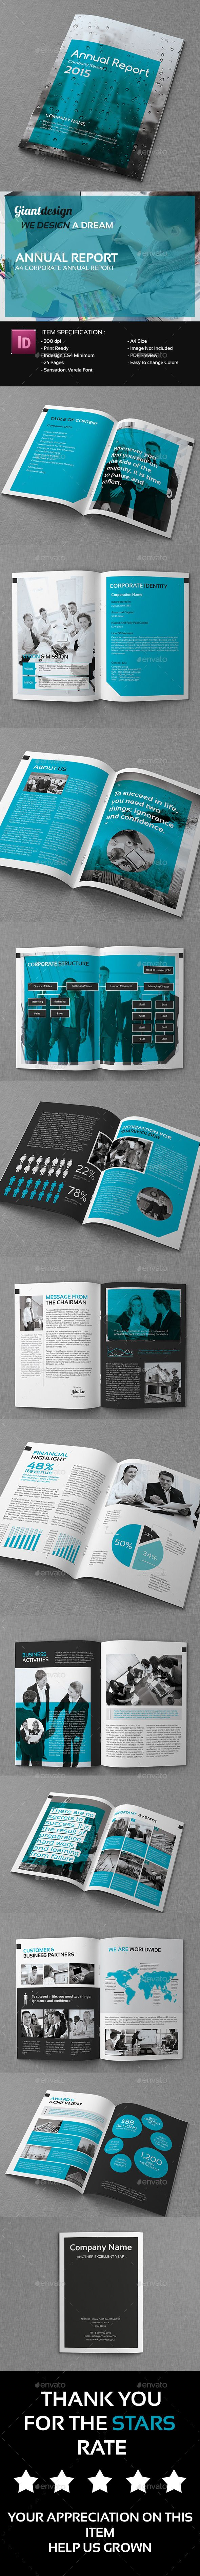 Annual Report  A Corporate Annual Report Brochure Is A Powerful